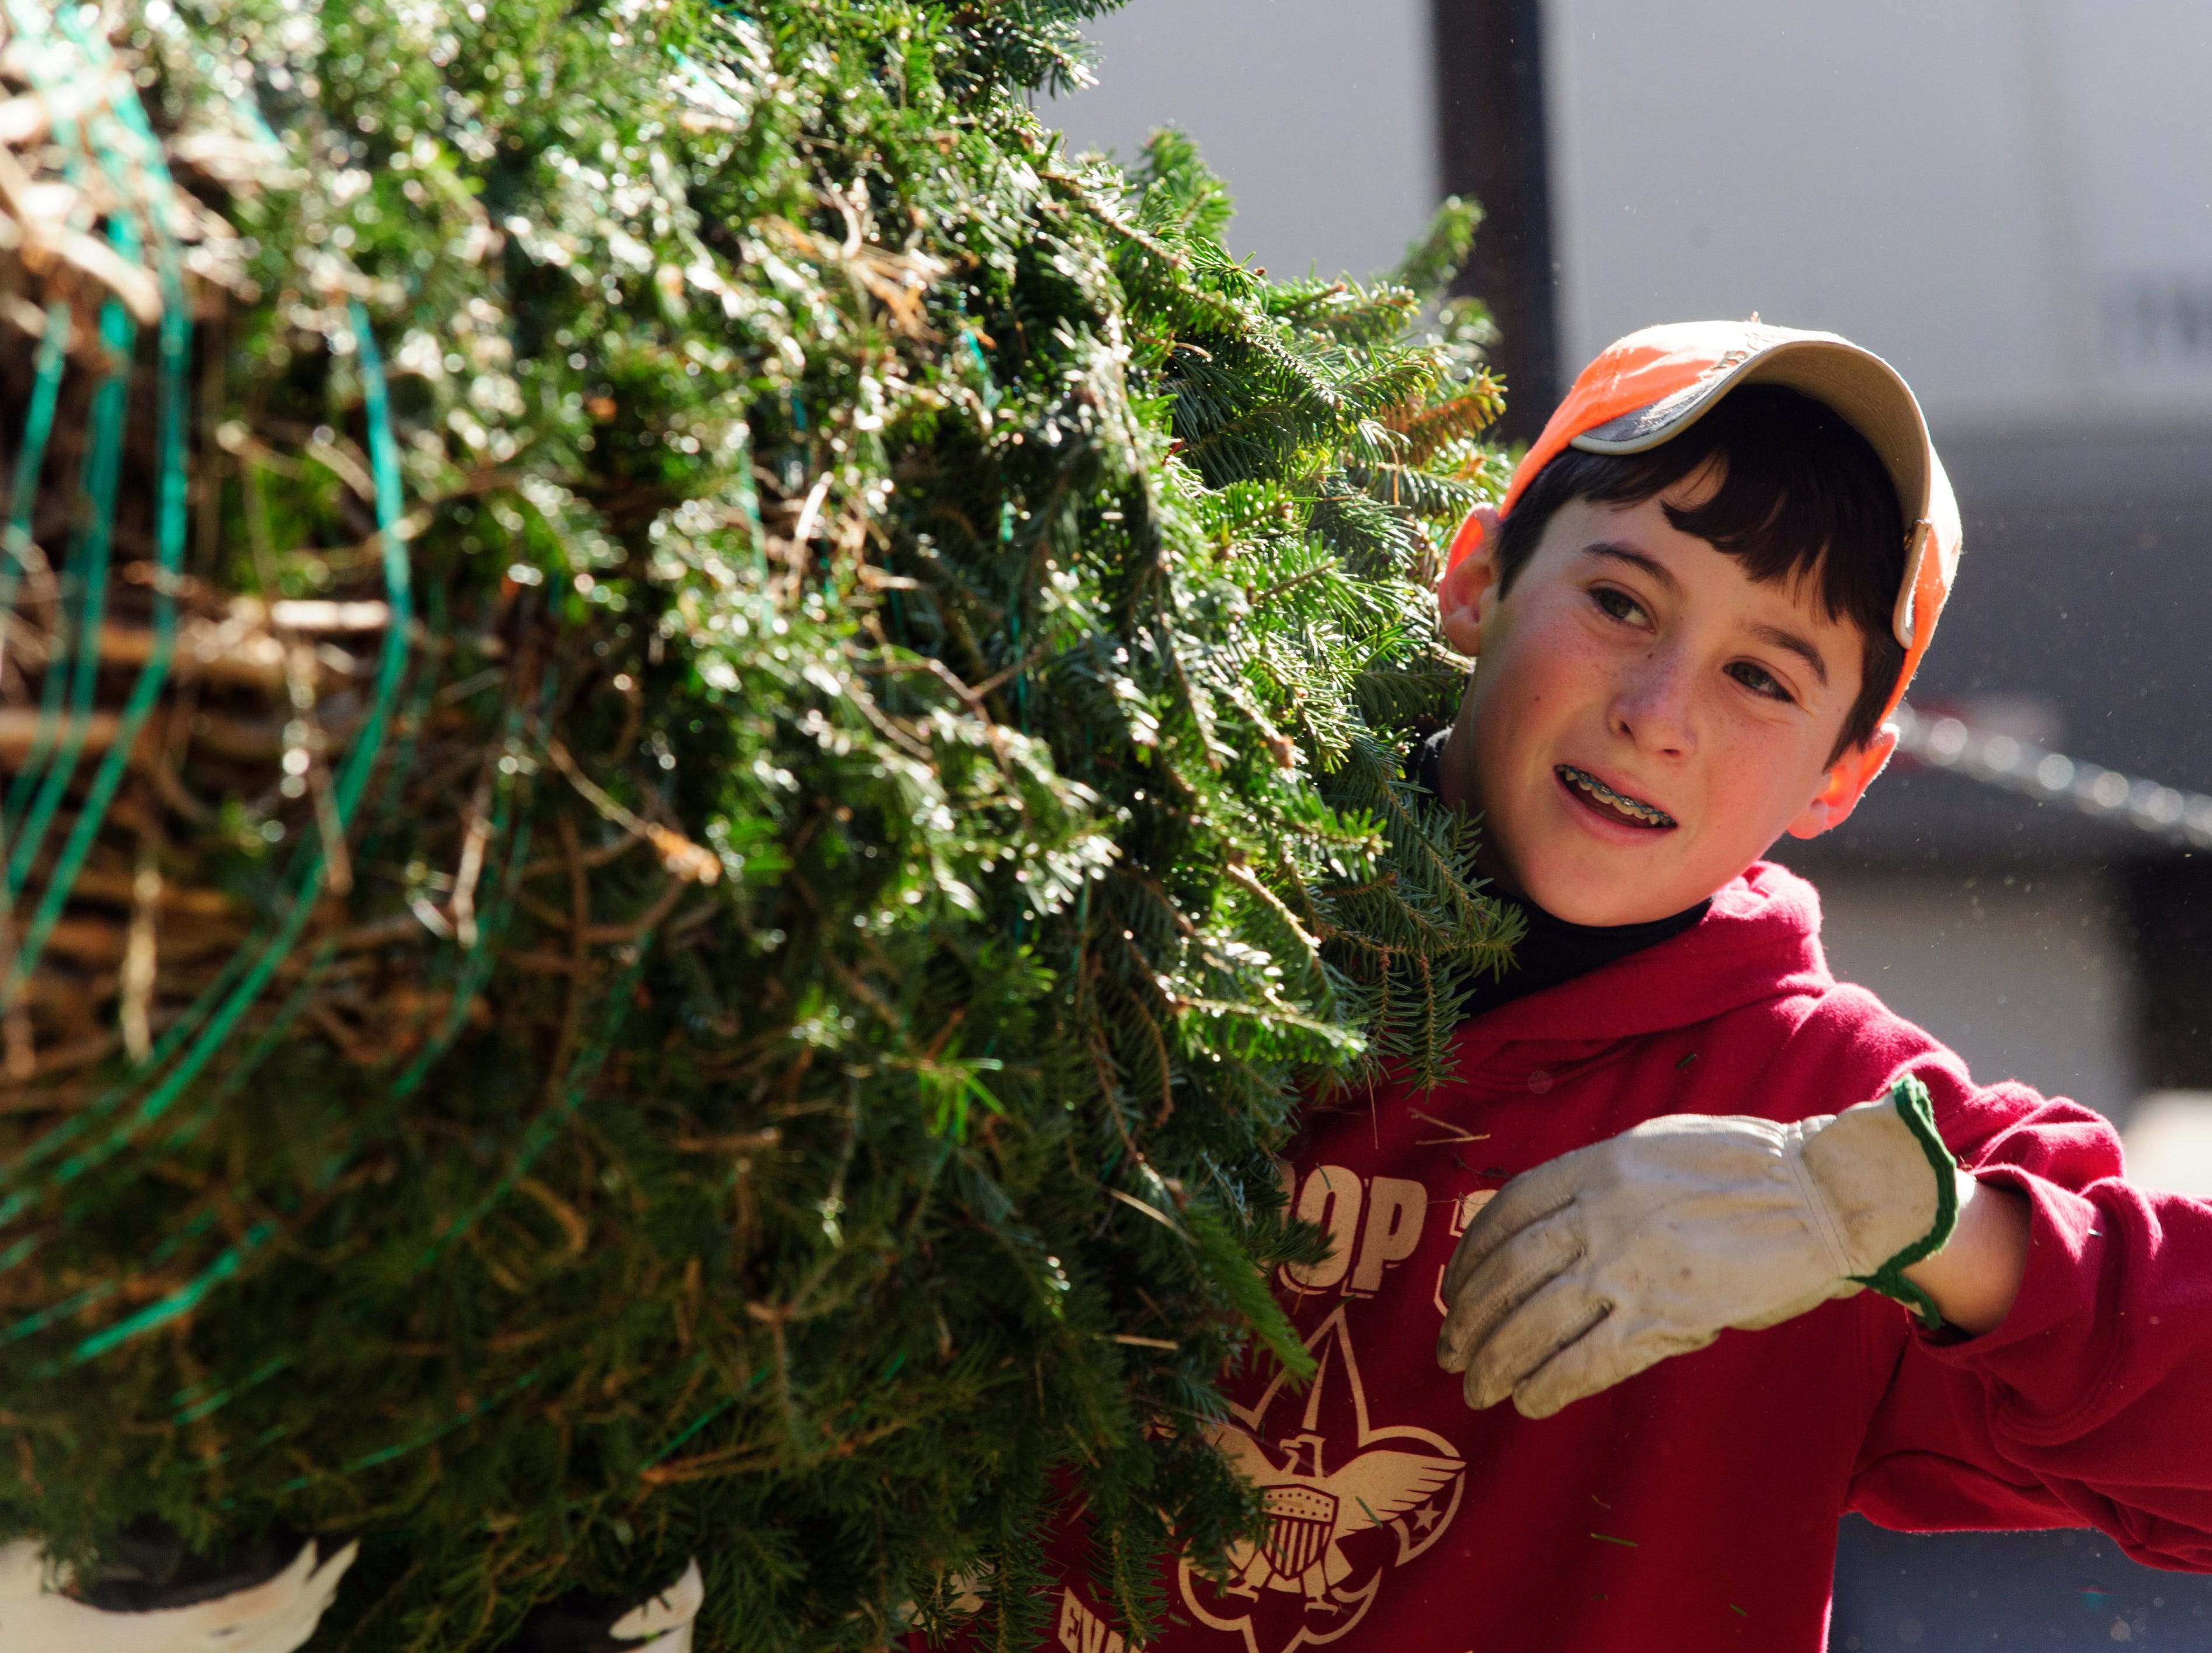 Dalton Peerman, 13, help bring a big tree to the Boy scout Troop 399  annual Christmas tree sale at Sacred Heart Catholic Church on West Franklin Street in Evansville, IN Friday morning Nov. 29, 2013.